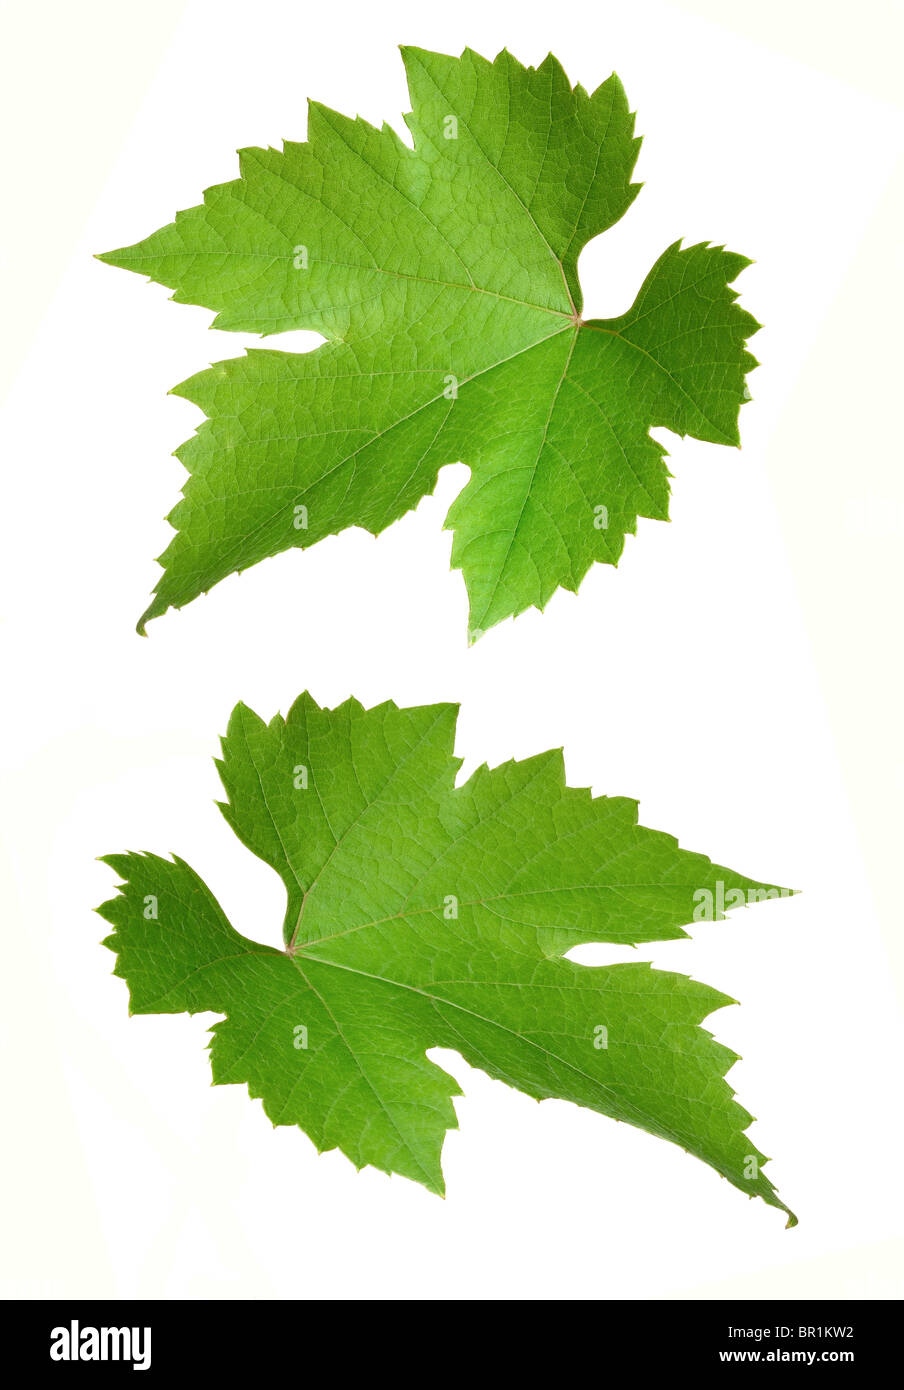 Grape Vine leaves - Stock Image